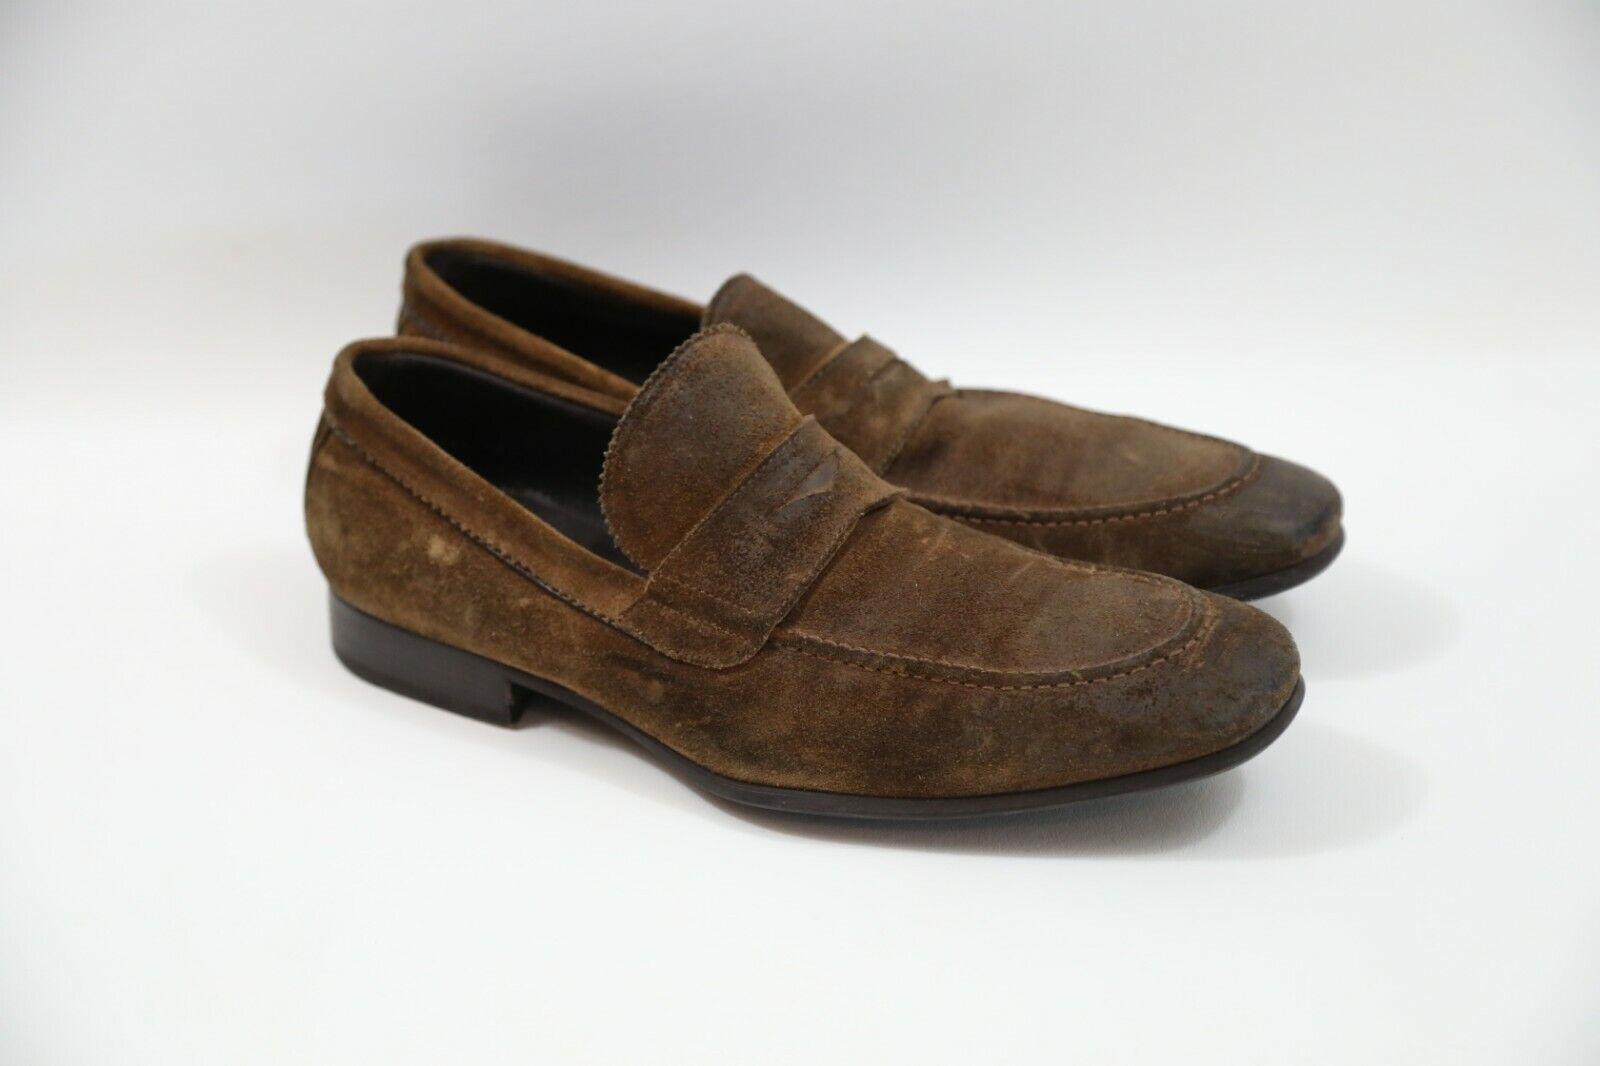 264 To Boot New York  Suede Loafers Size 10